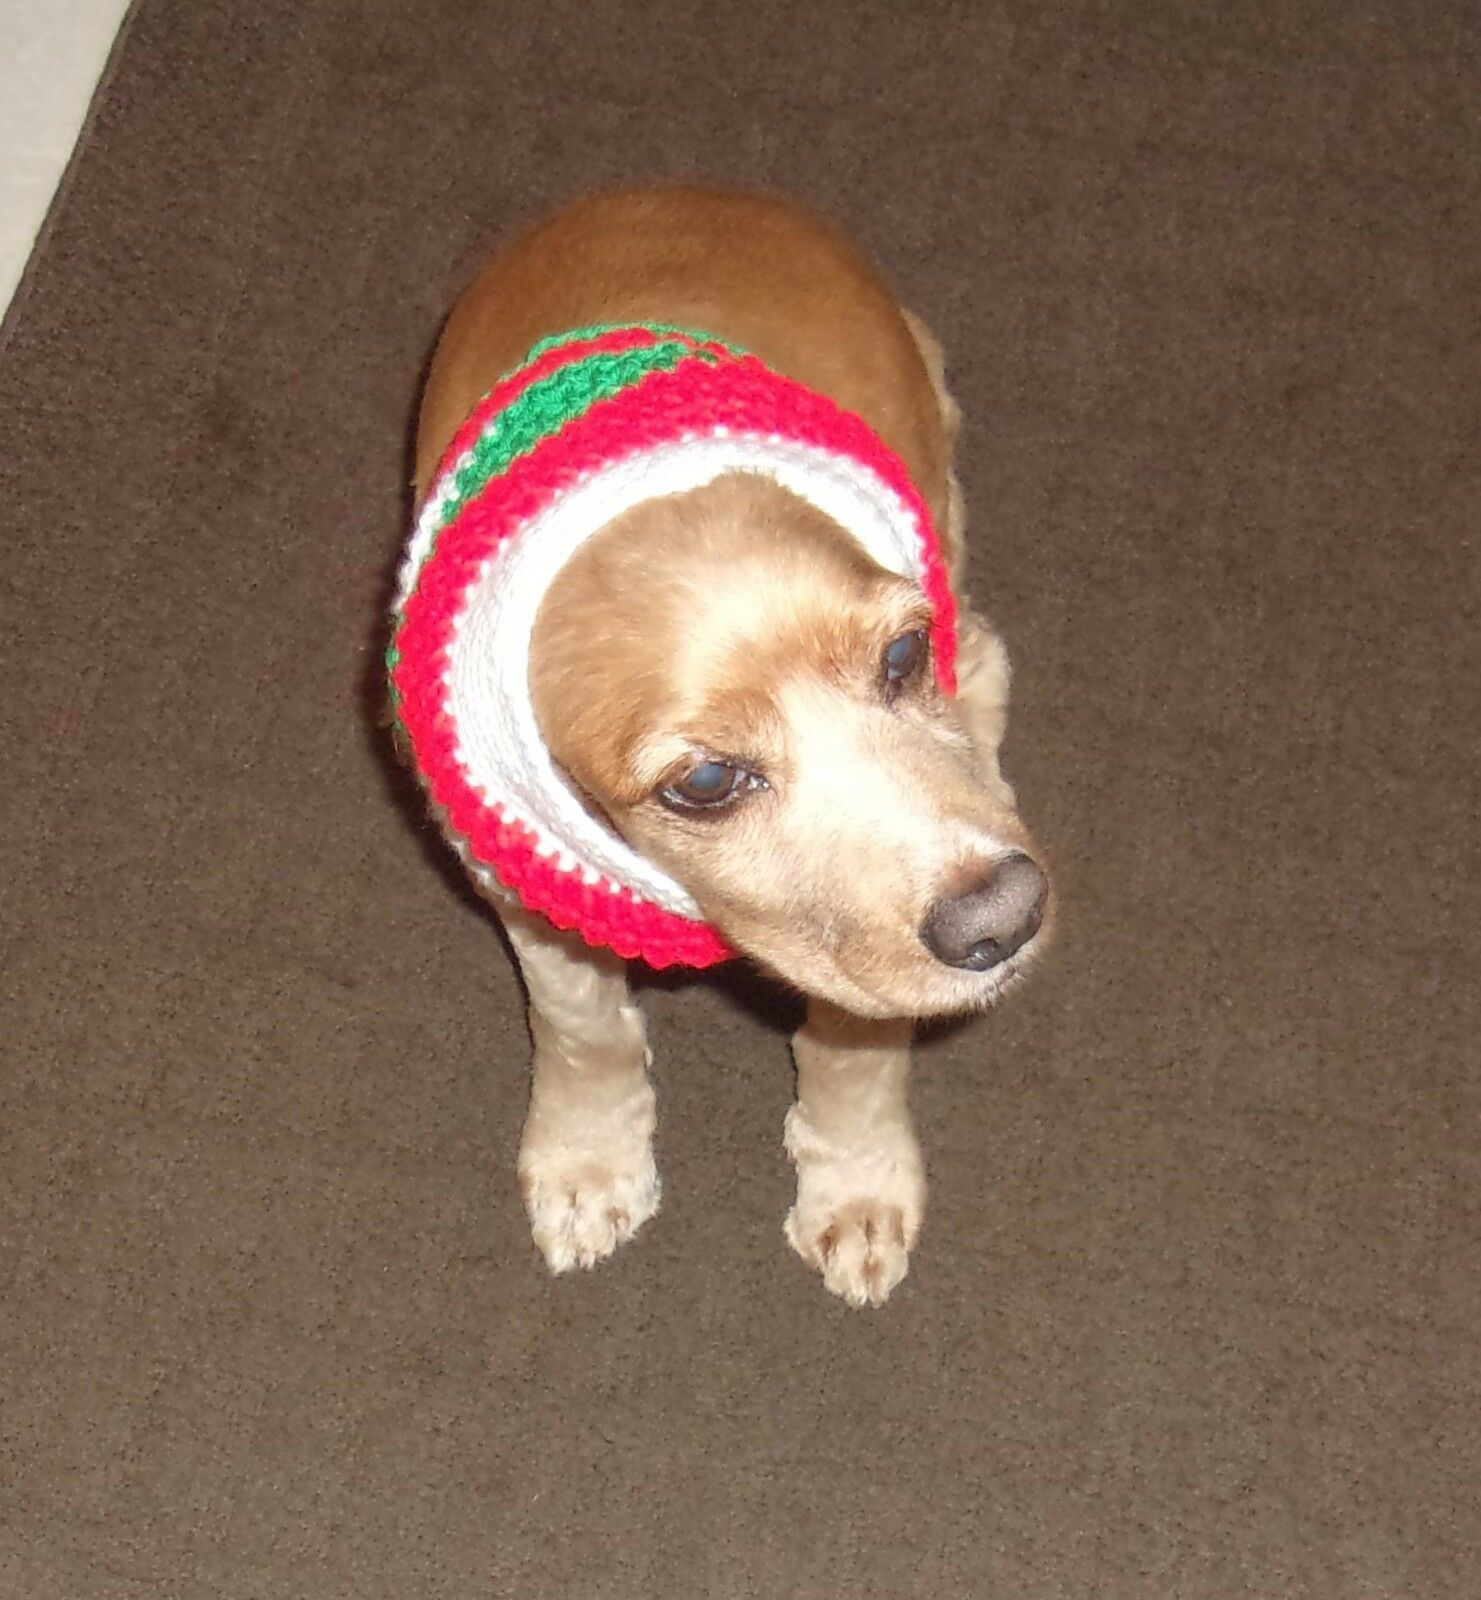 Brand New Hand Crocheted Red Green White Dog Snood Neck Warmer 4 Rescue Charity